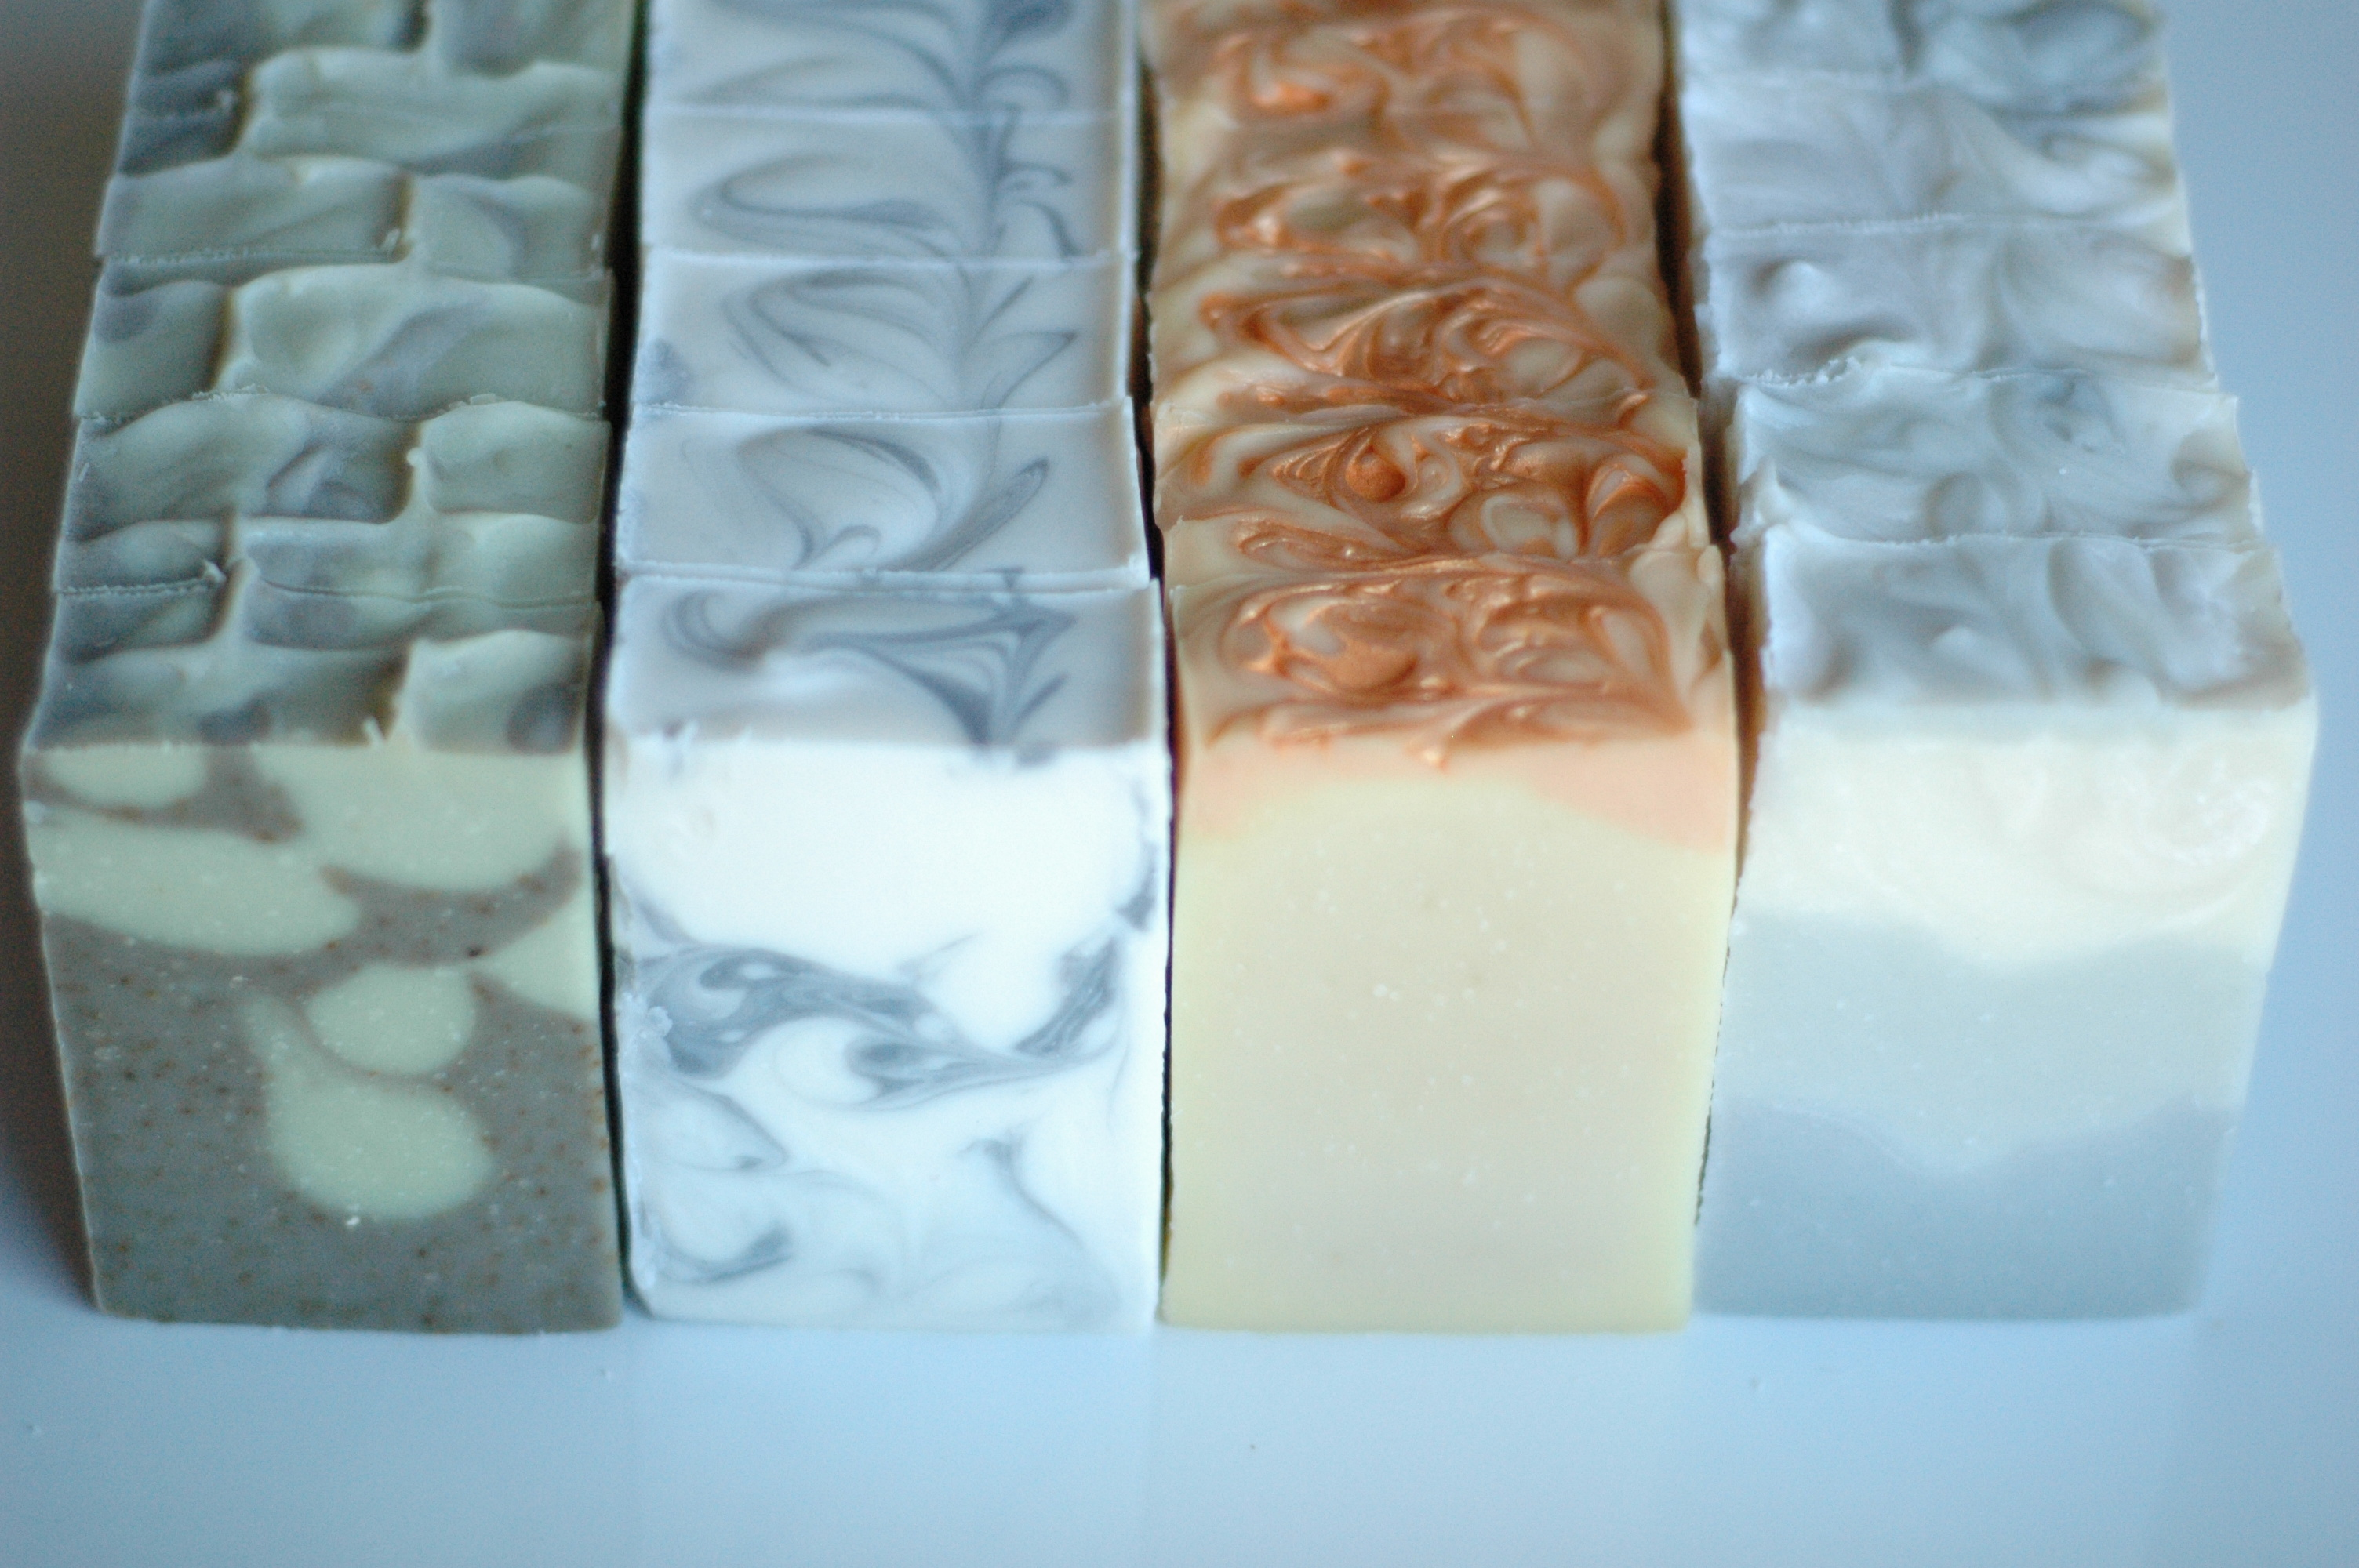 Jane Austen in Winter soap collection